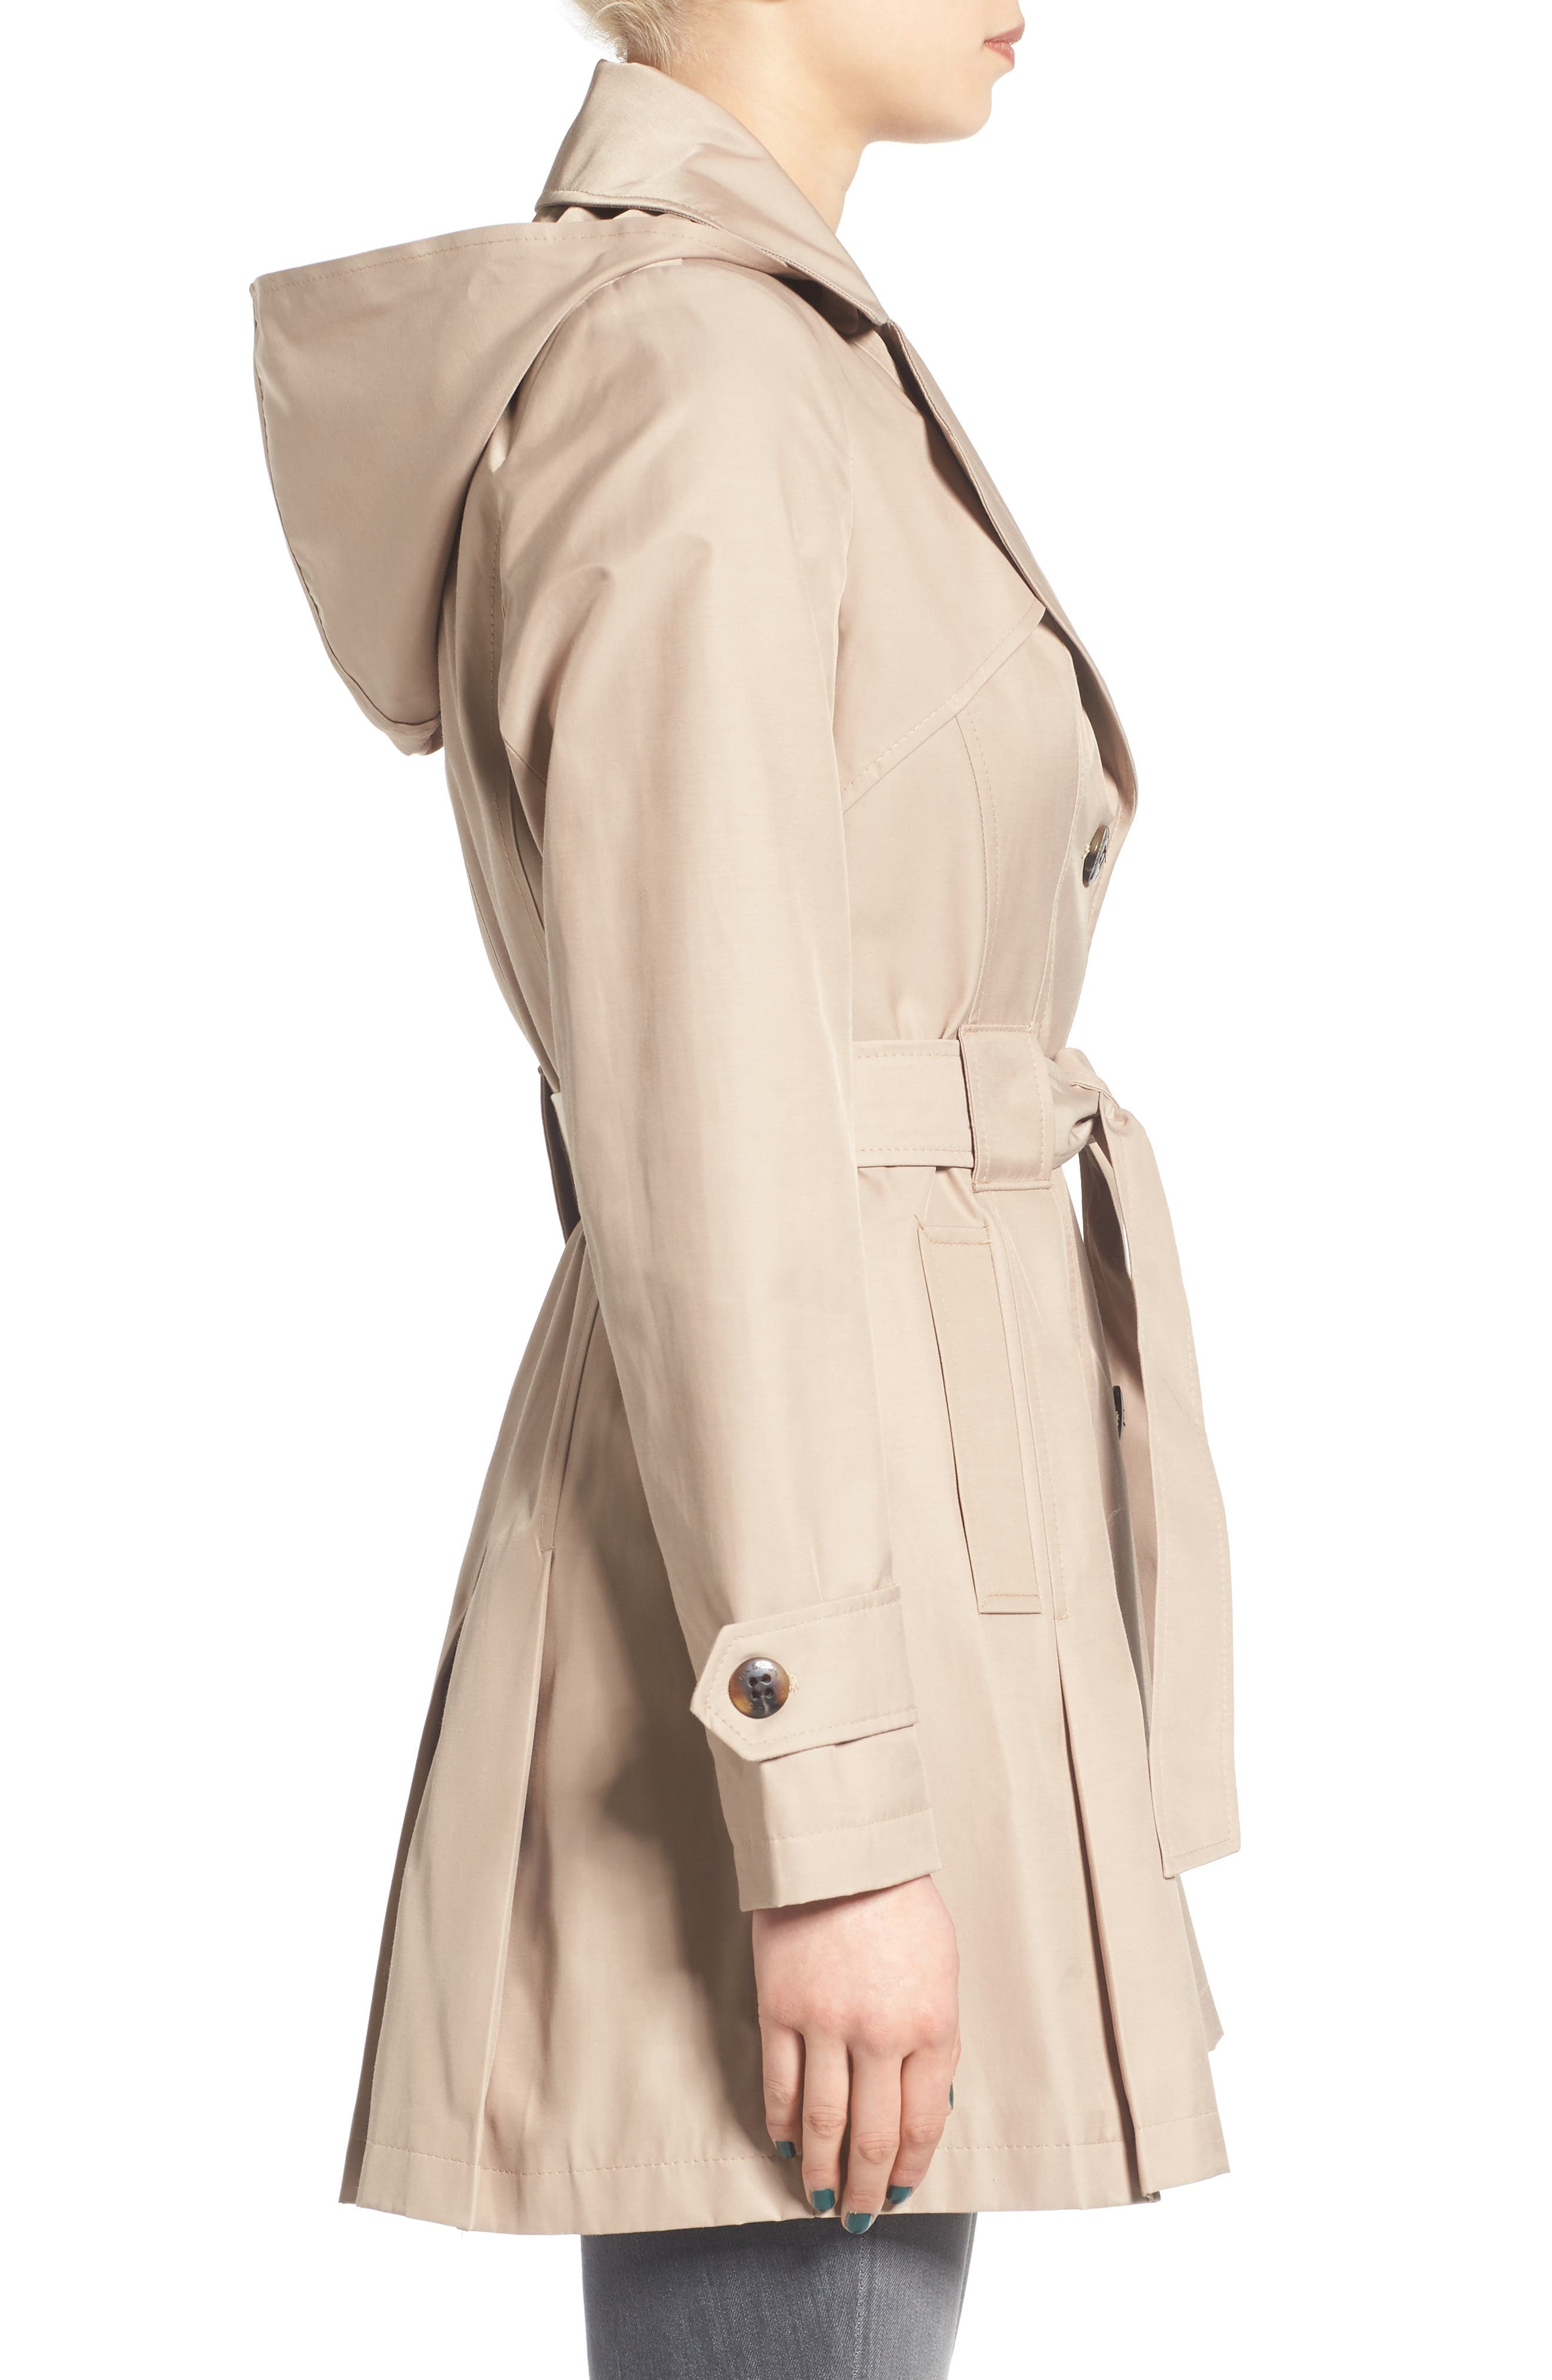 'Scarpa' Hooded Single Breasted Trench Coat,                             Alternate thumbnail 3, color,                             Sand